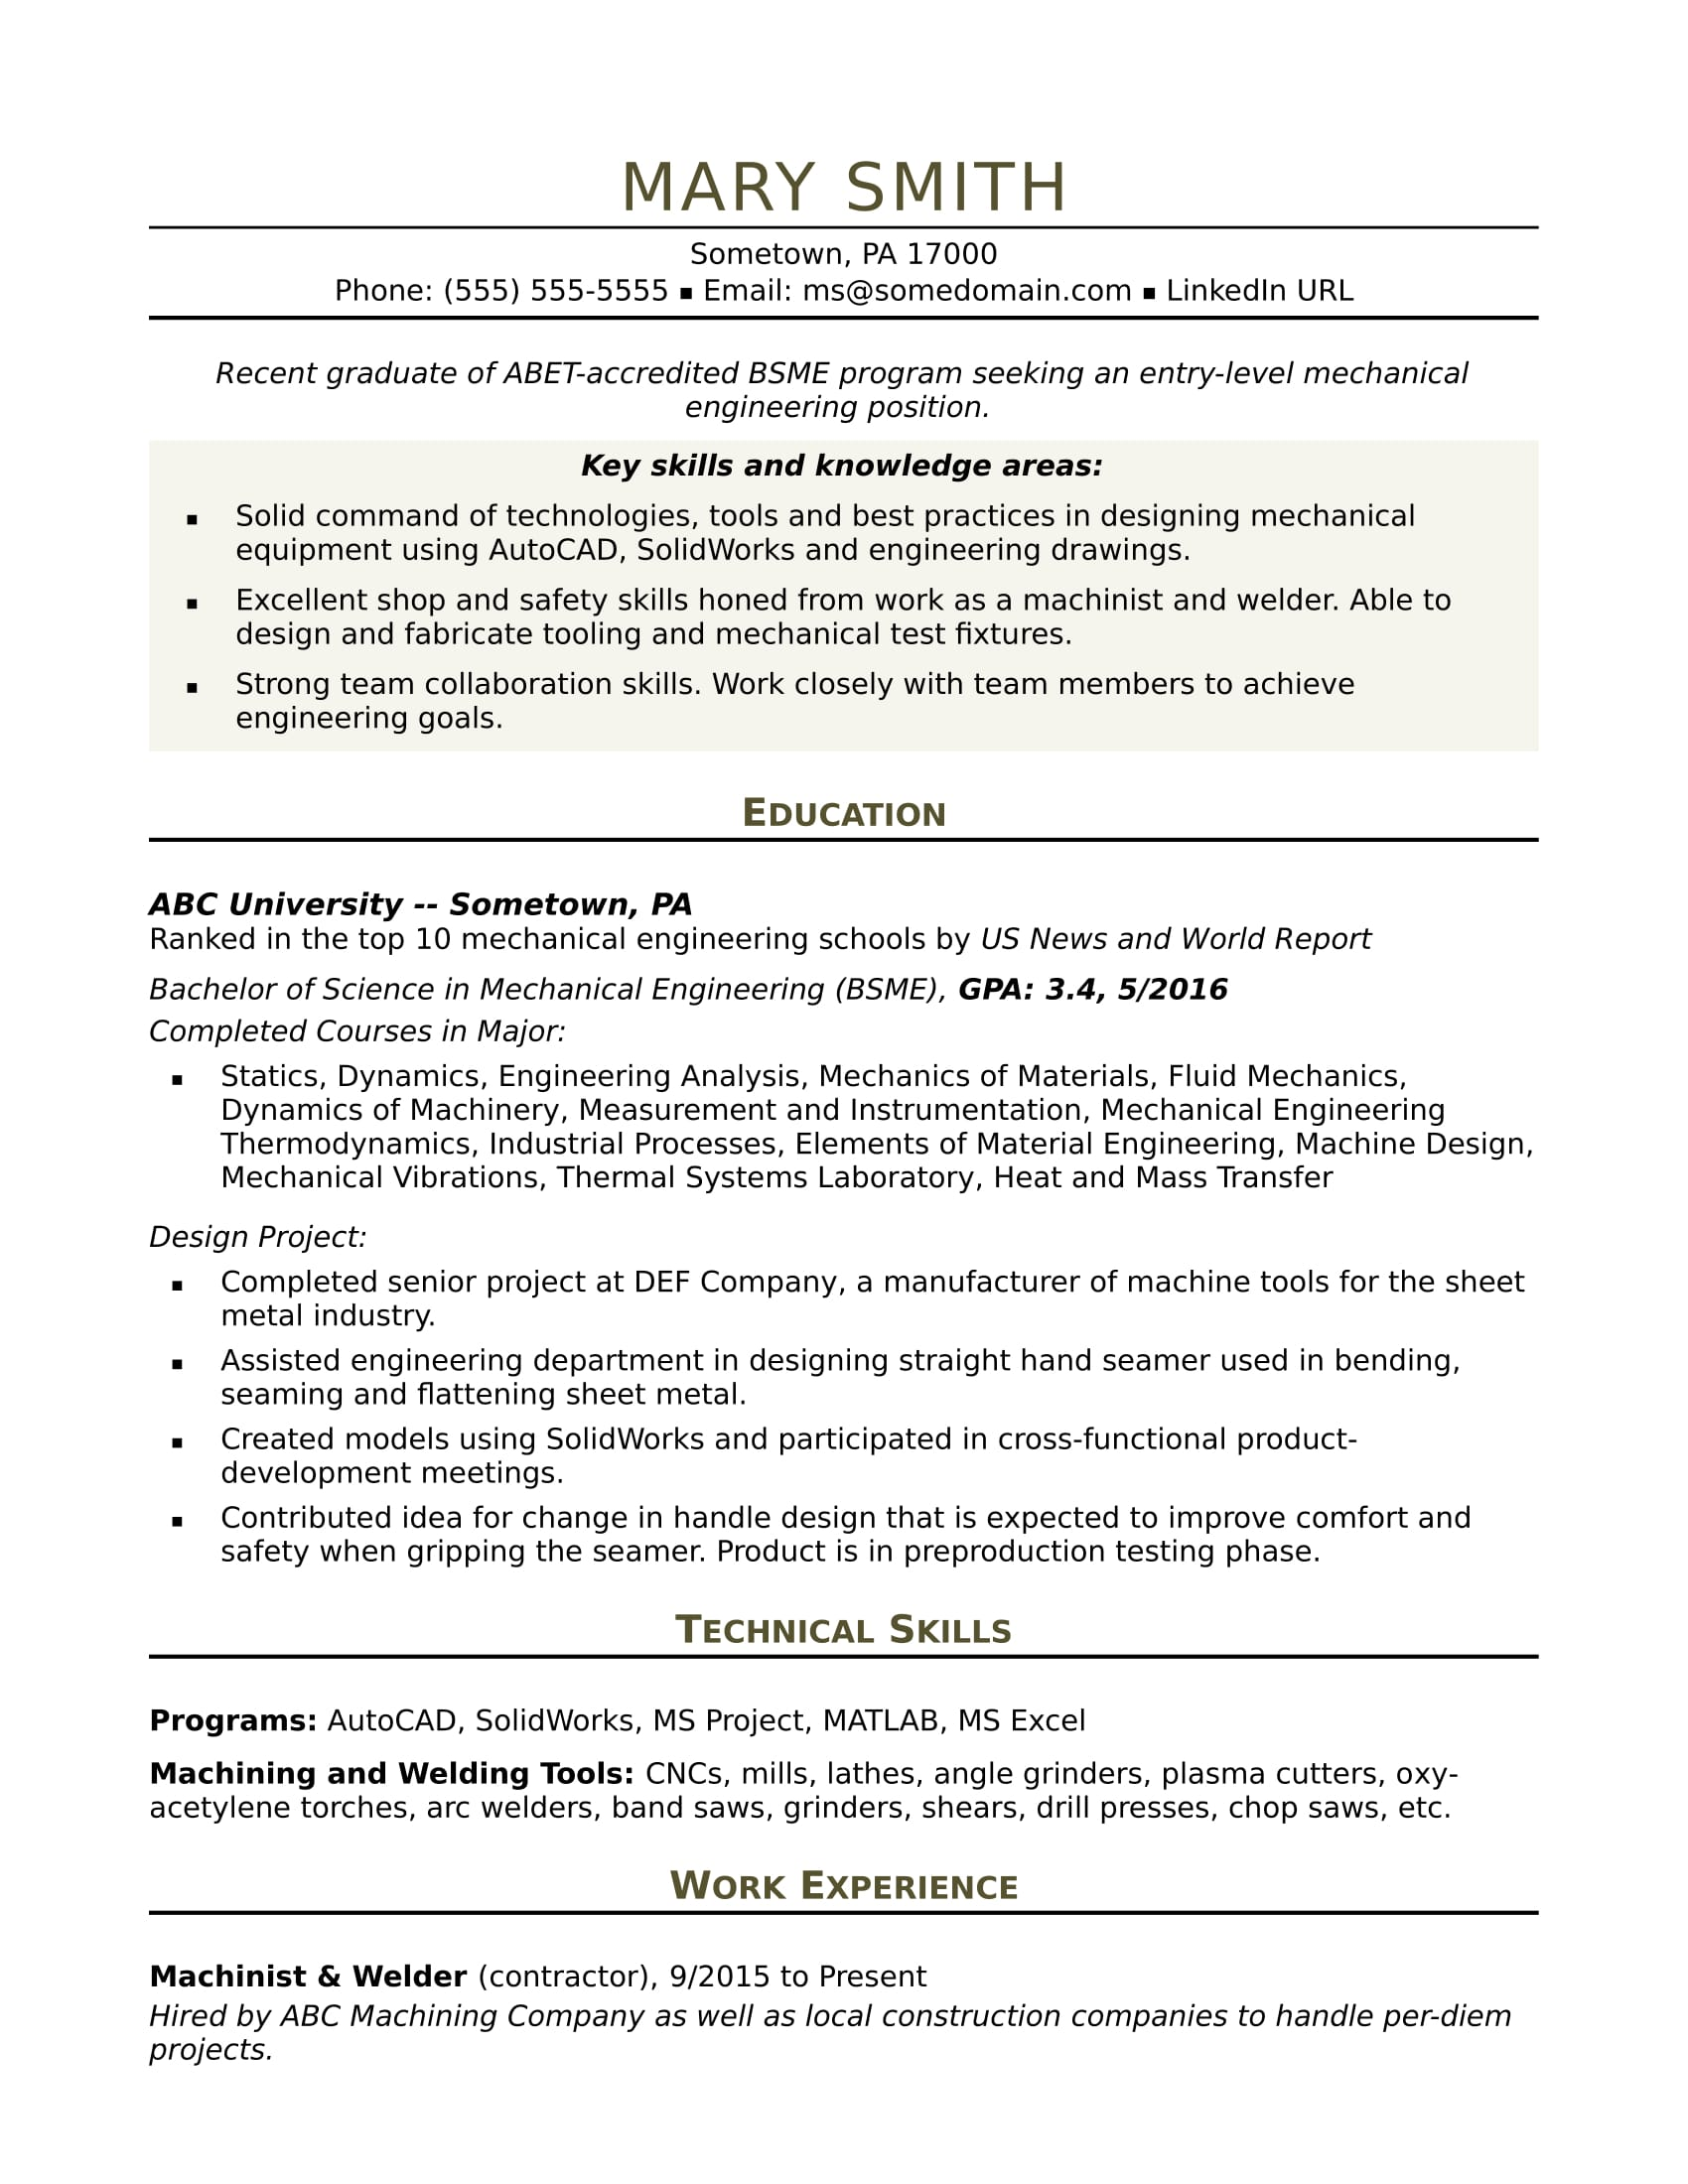 mechanical engineering resume template sample resume for an entry level mechanical engineer 23599 | mechanical engineer entry level